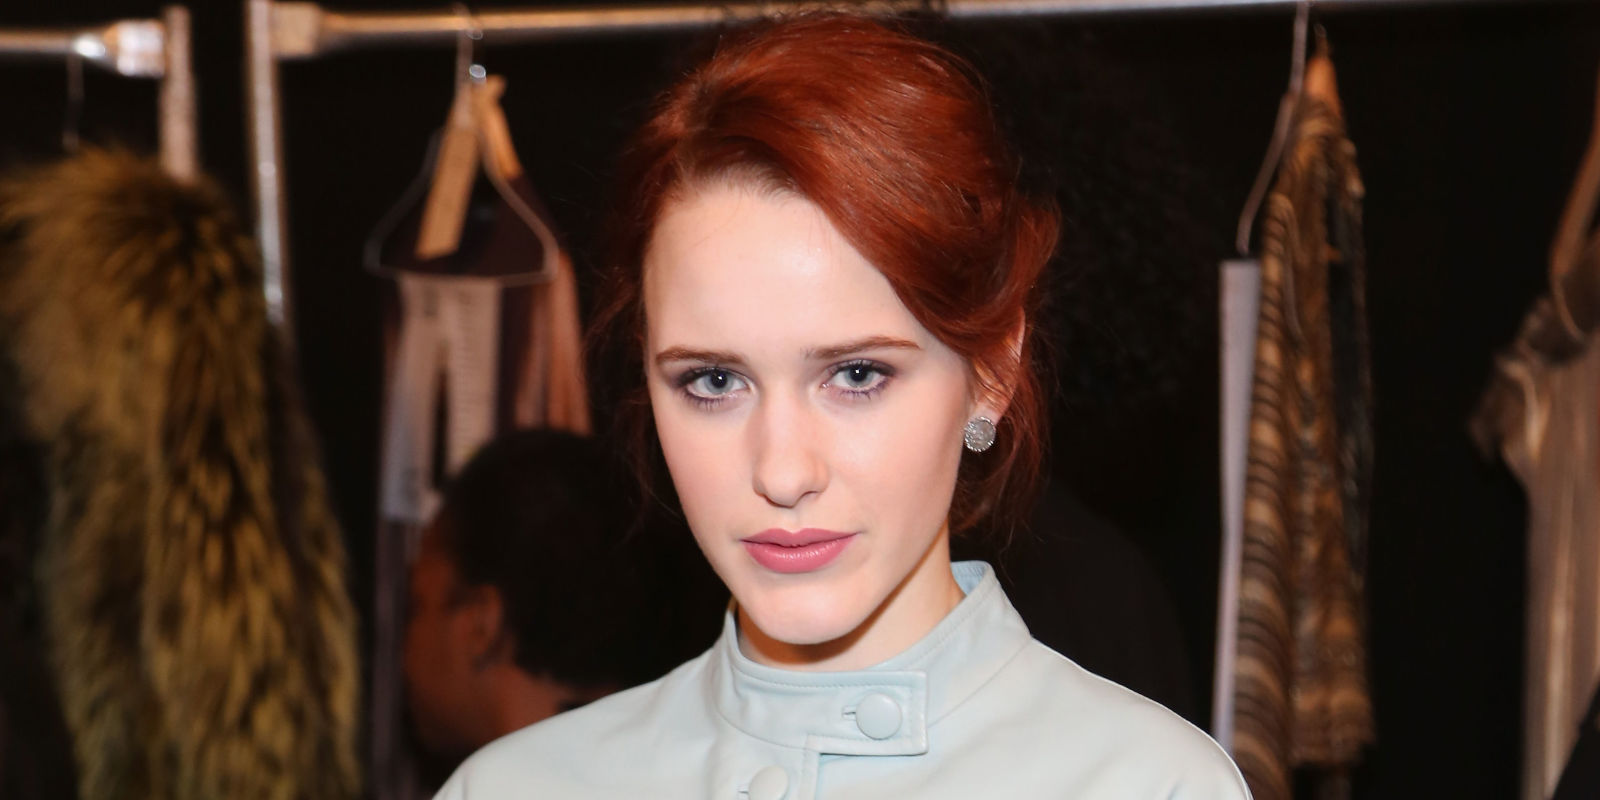 rachel brosnahan imdbrachel brosnahan orange is the new black, rachel brosnahan instagram, rachel brosnahan twitter, rachel brosnahan, rachel brosnahan imdb, rachel brosnahan boyfriend, rachel brosnahan manhattan, rachel brosnahan interview, rachel brosnahan reddit